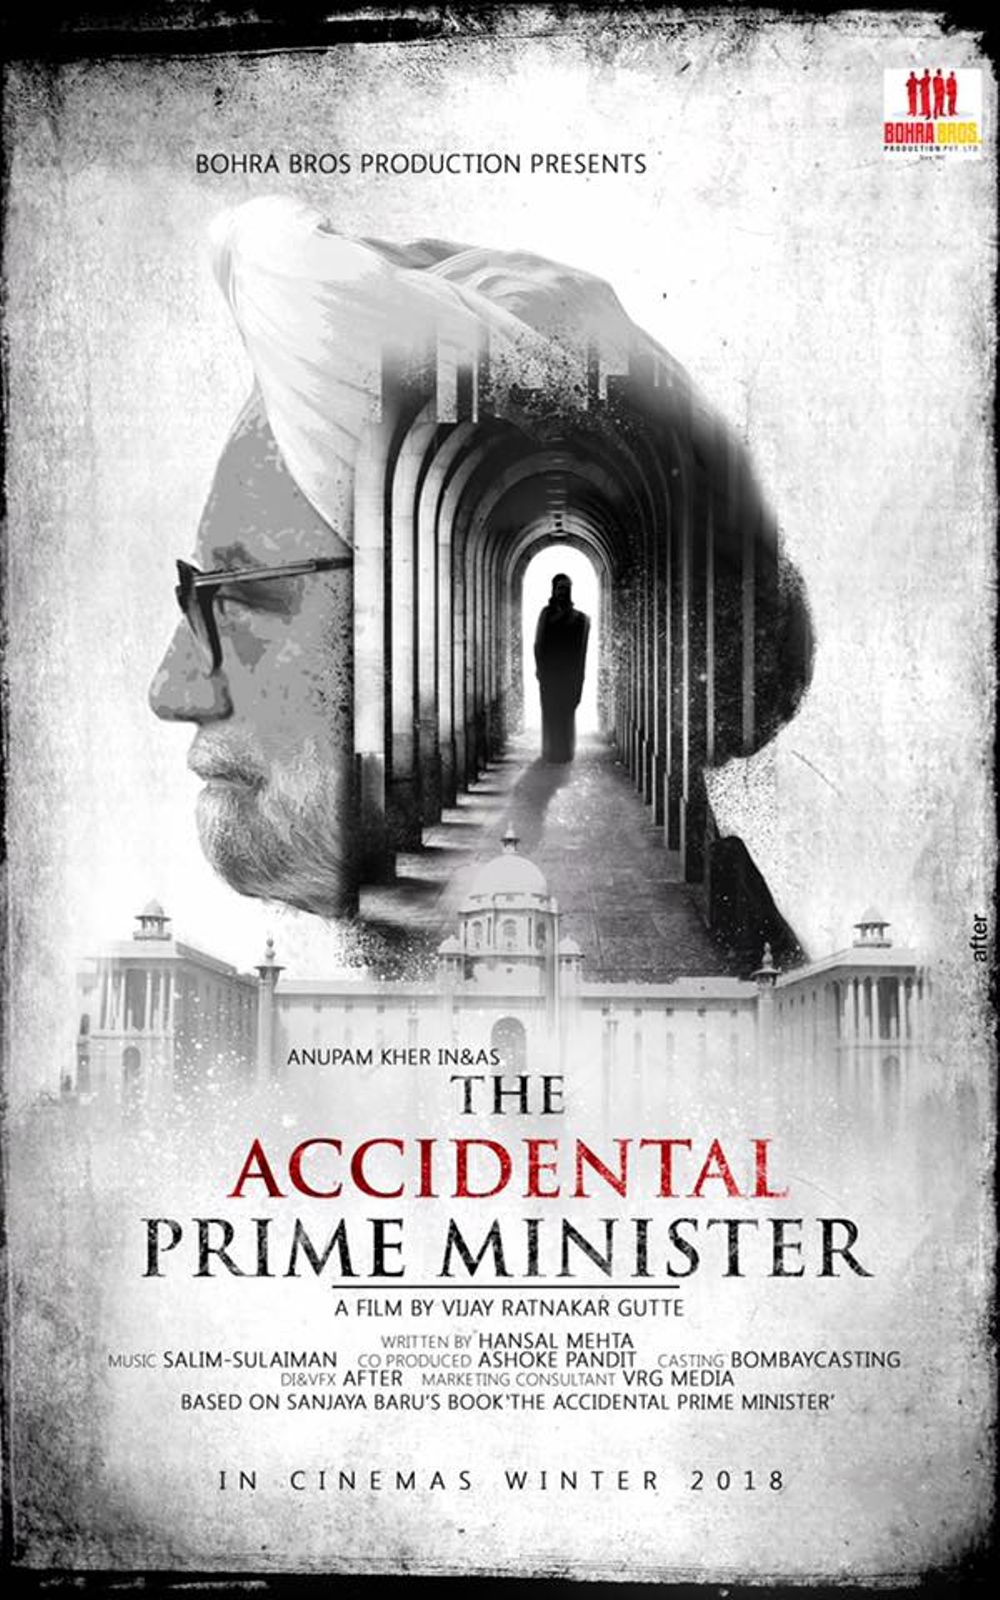 The Accidental Prime Minister Movie Review